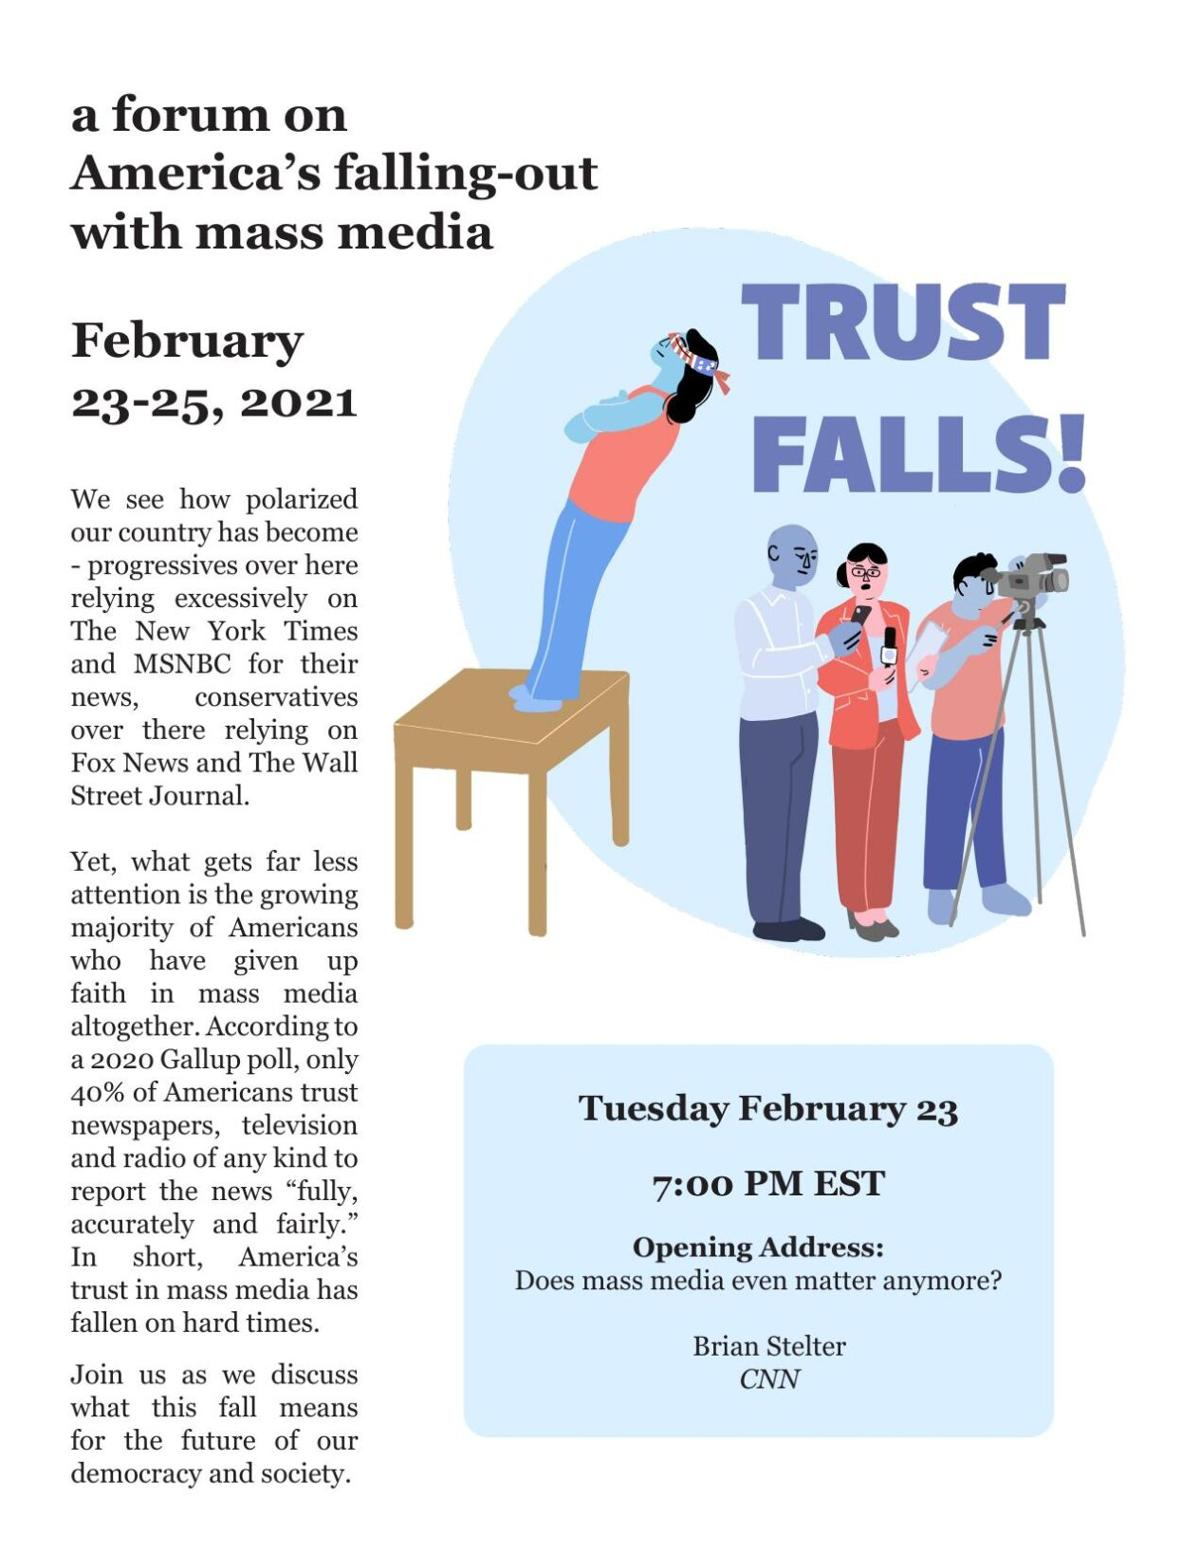 Trust Falls! a forum on America's falling-out with mass media February 23-25, 2021